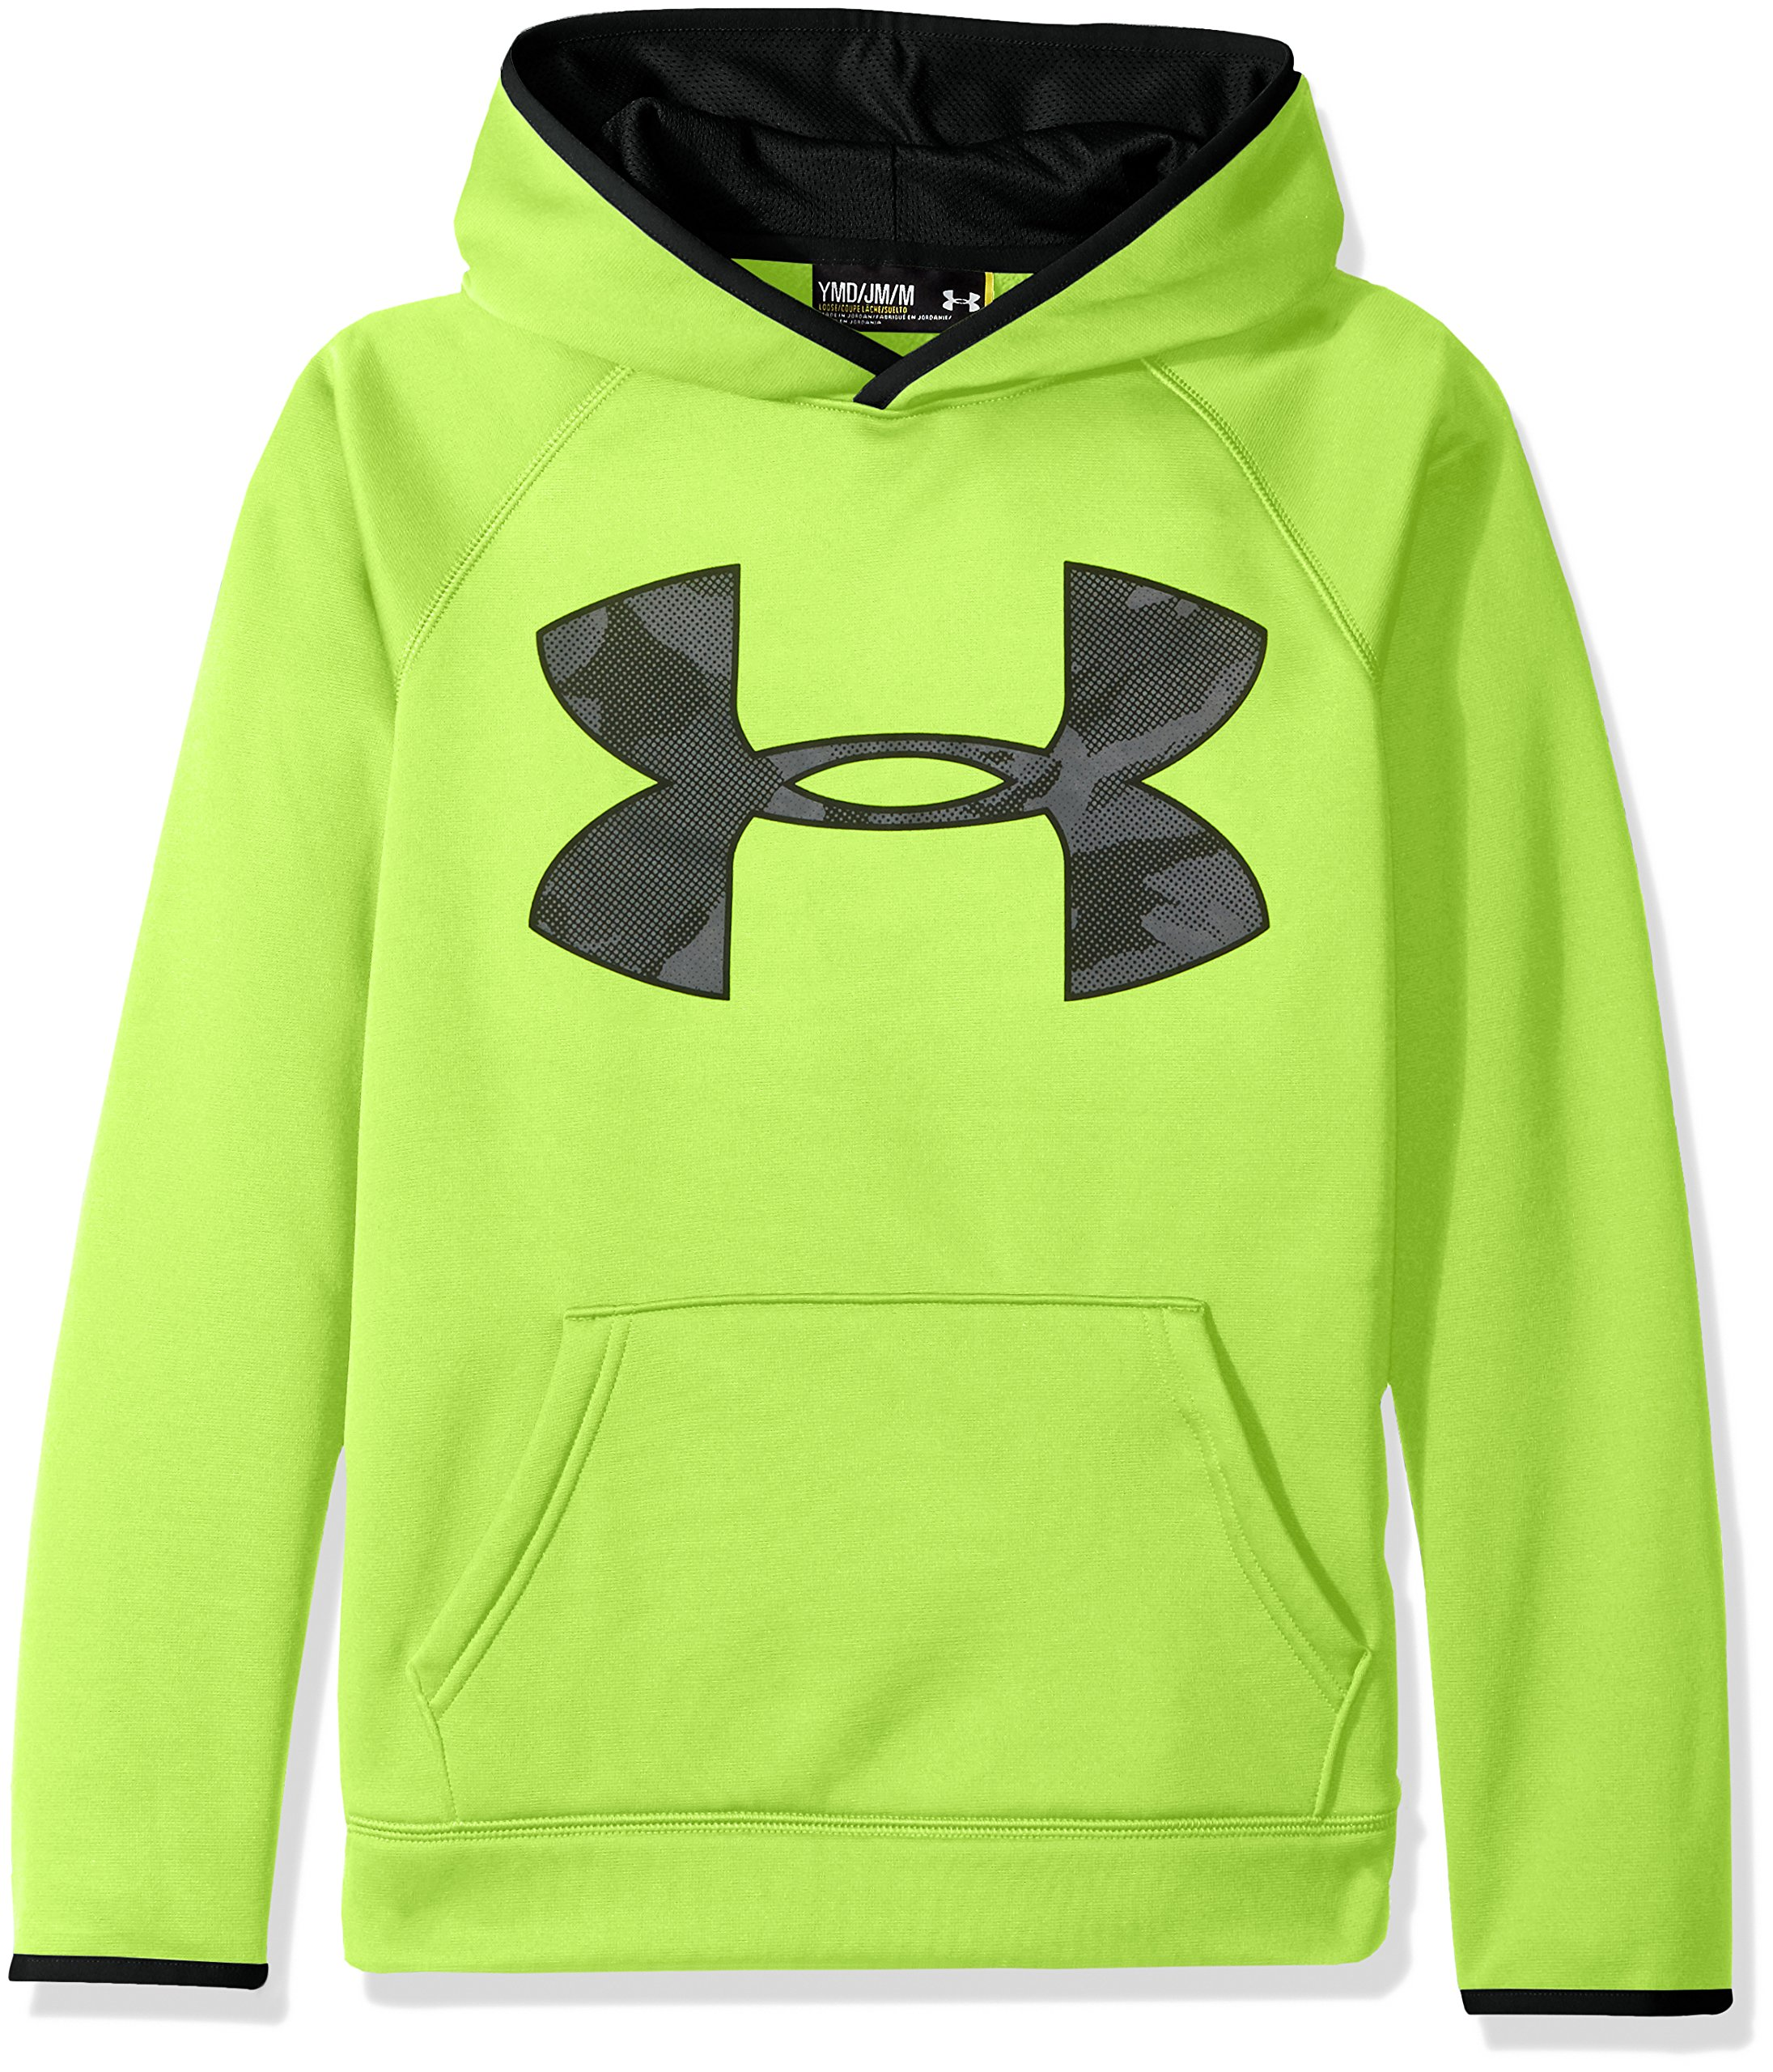 Under Armour Boys' Storm Armour Fleece Highlight Big Logo Hoodie, Fuel Green (364)/Black, Youth Small by Under Armour (Image #1)